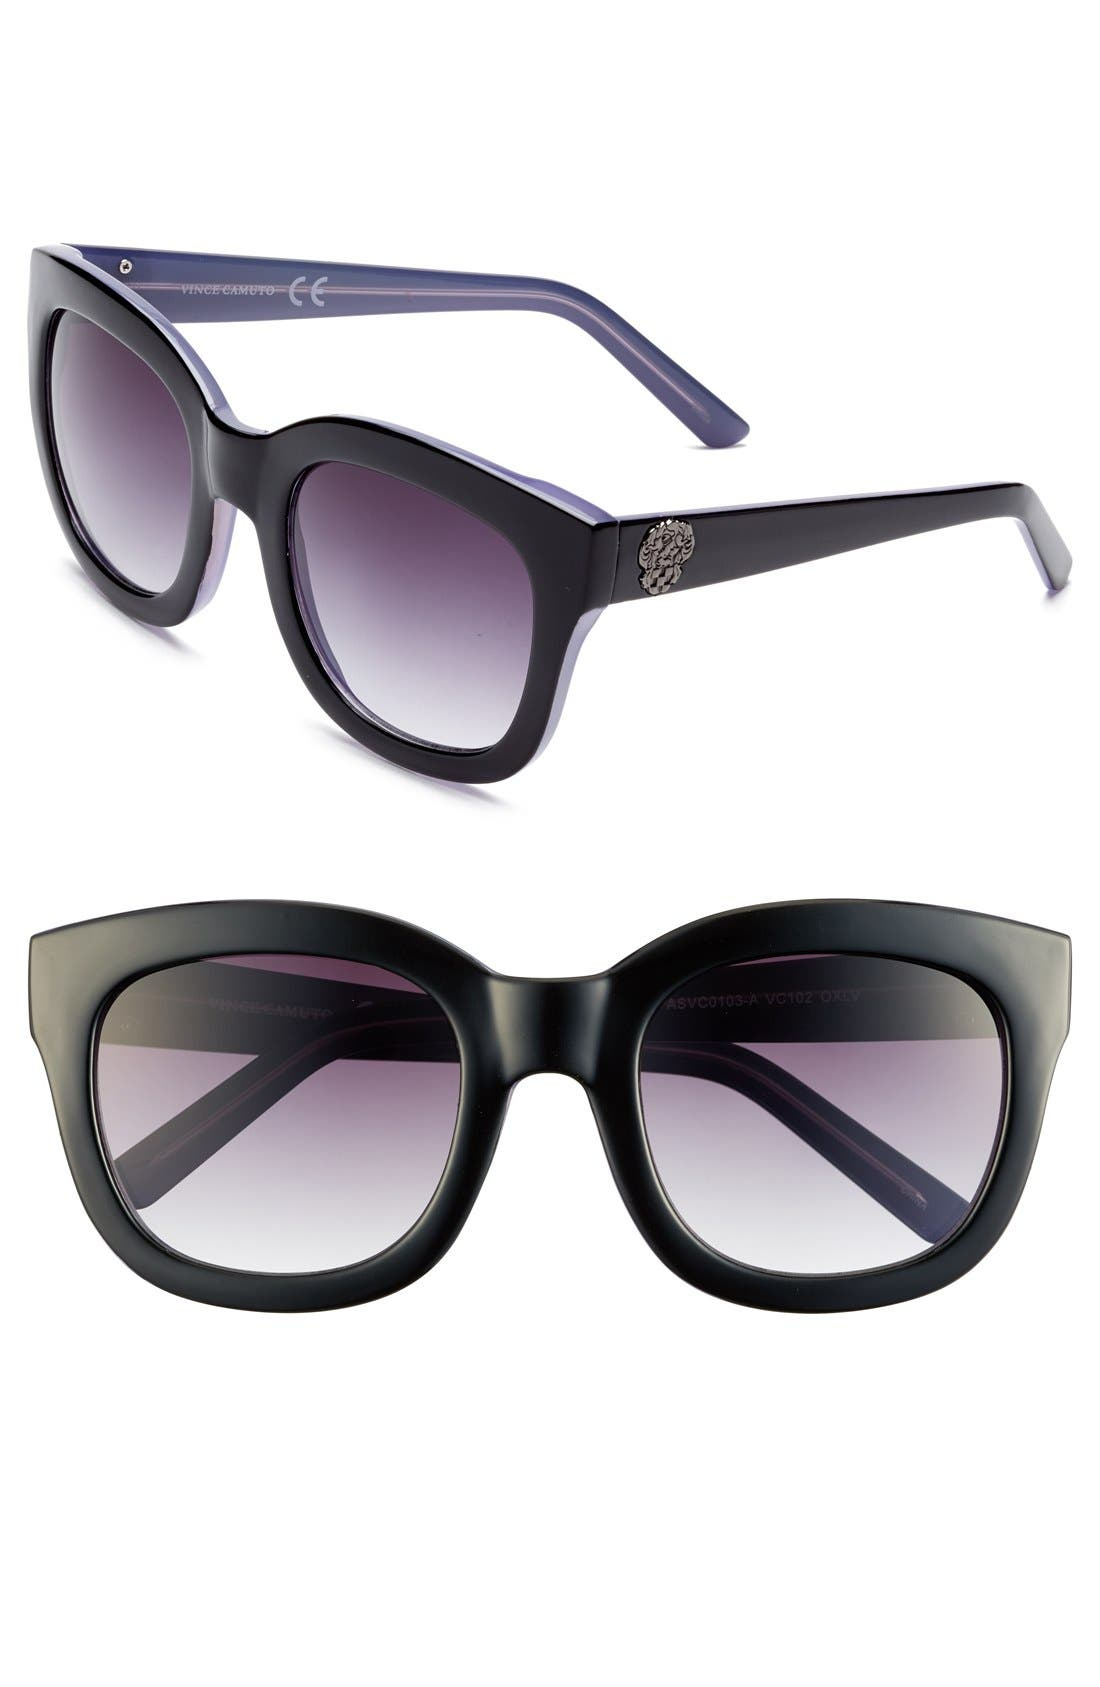 Main Image - Vince Camuto 54mm Oversized Cat Eye Sunglasses (Online Only)